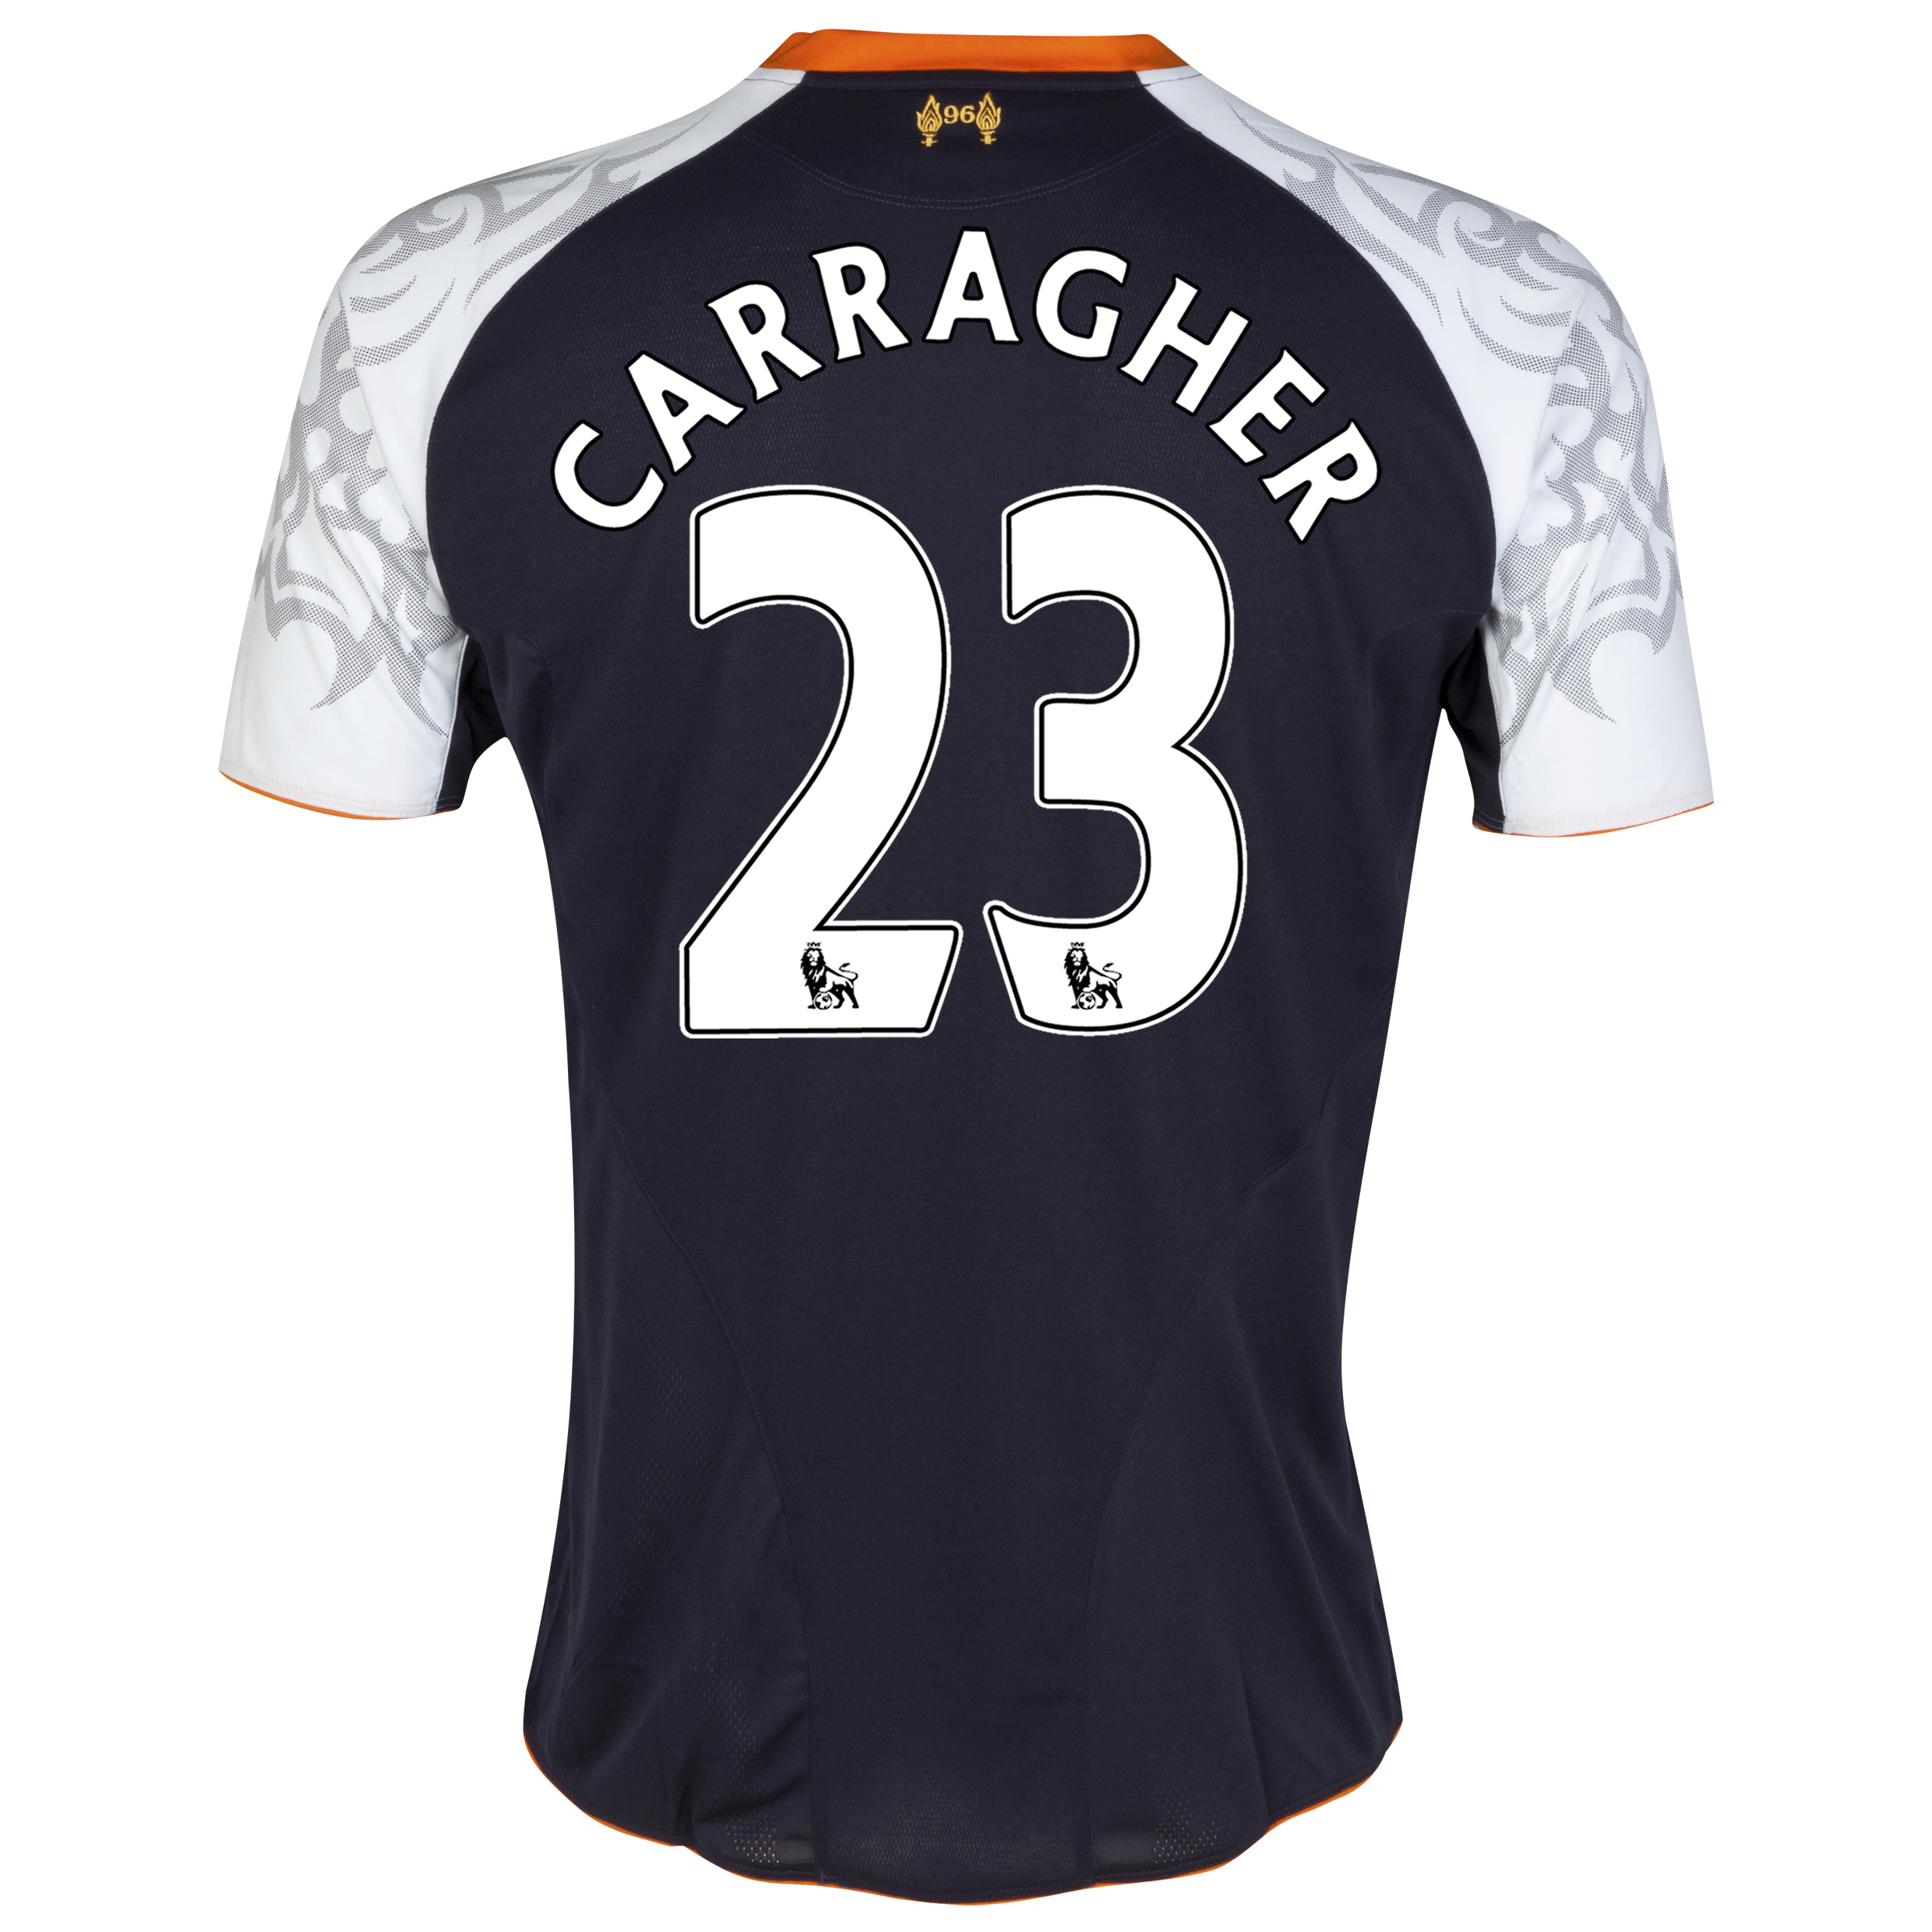 Liverpool Third Shirt 2012/13 with Carragher 23 printing